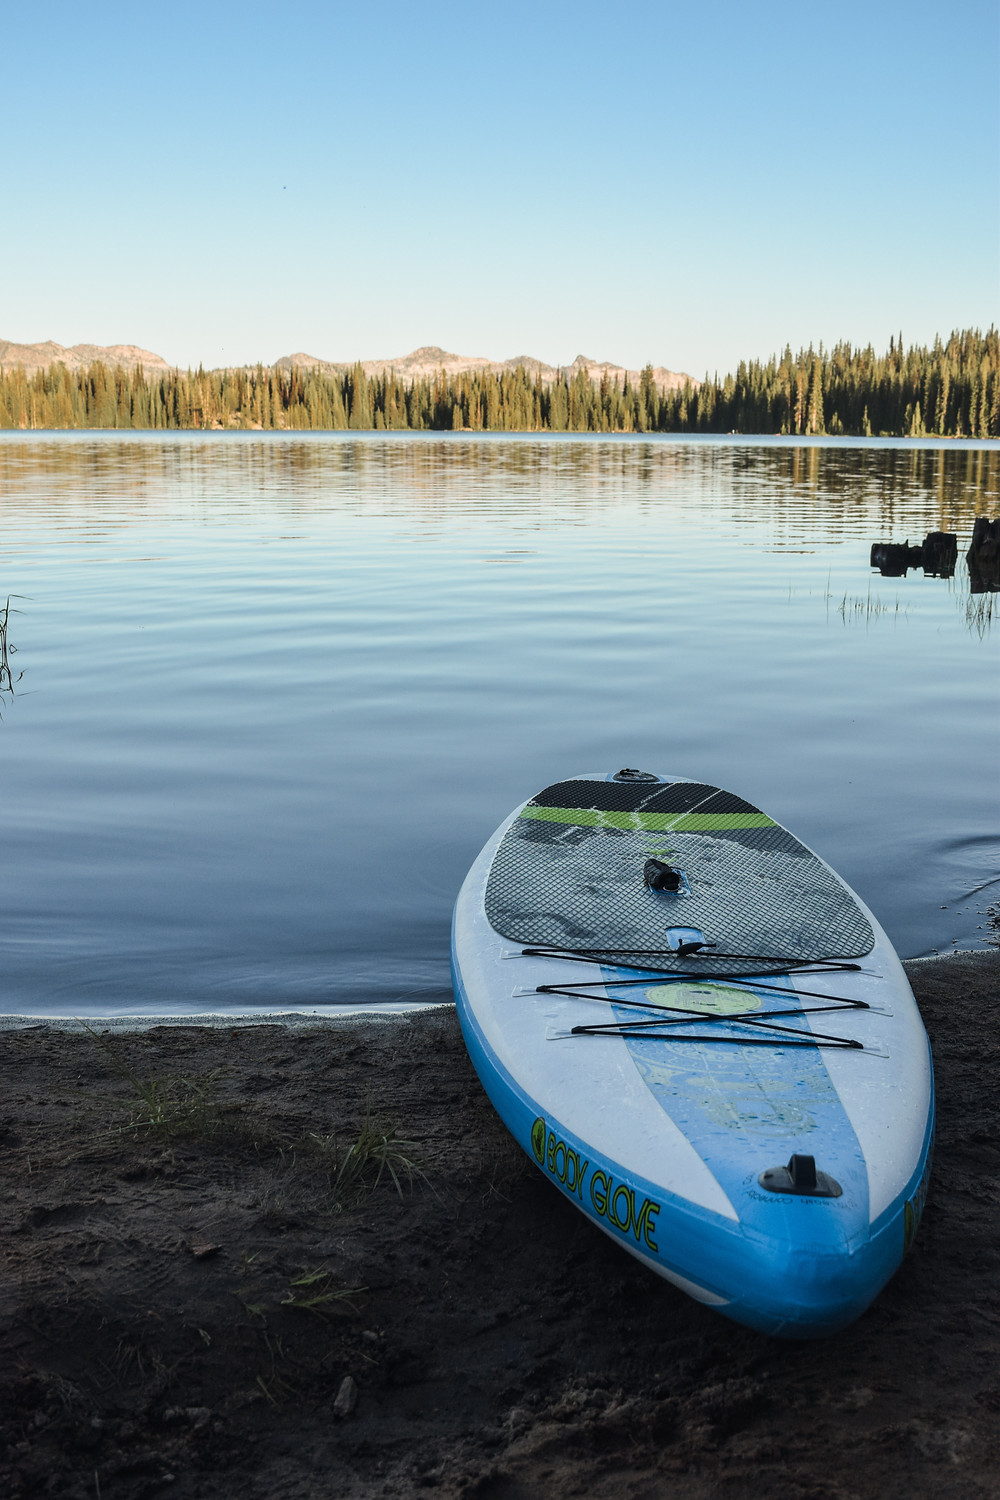 Paddleboard in front of mountain lake